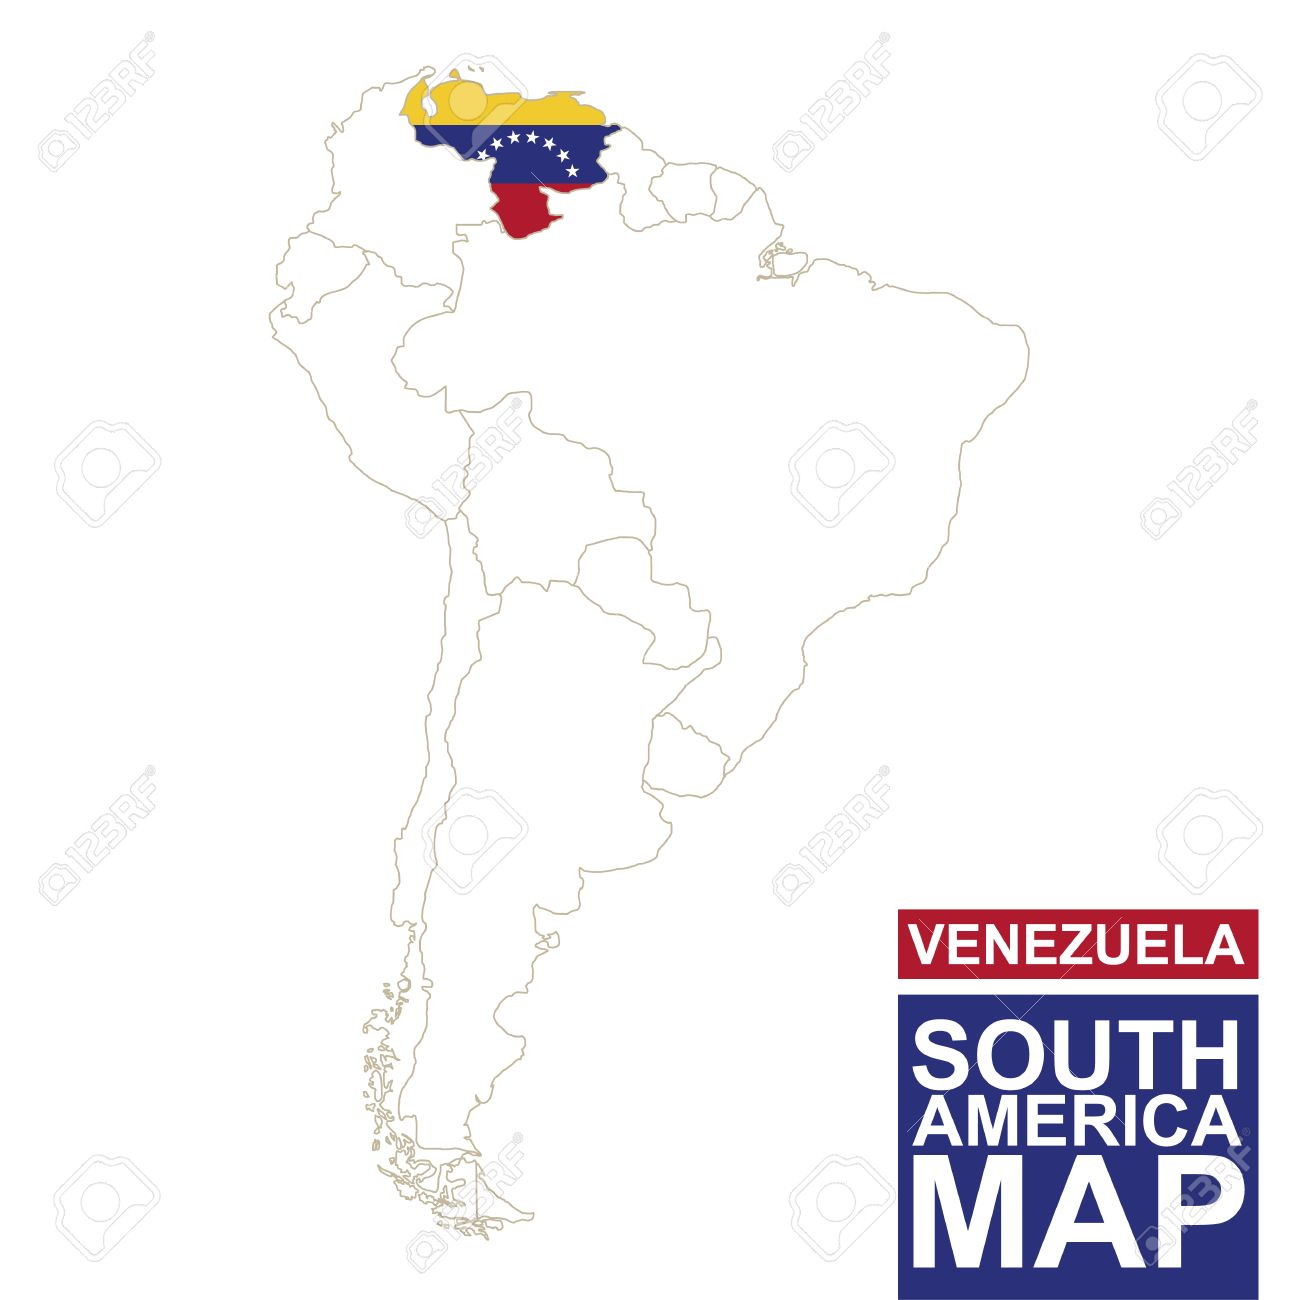 South America Contoured Map With Highlighted Venezuela Venezuela - Map of venezuela south america